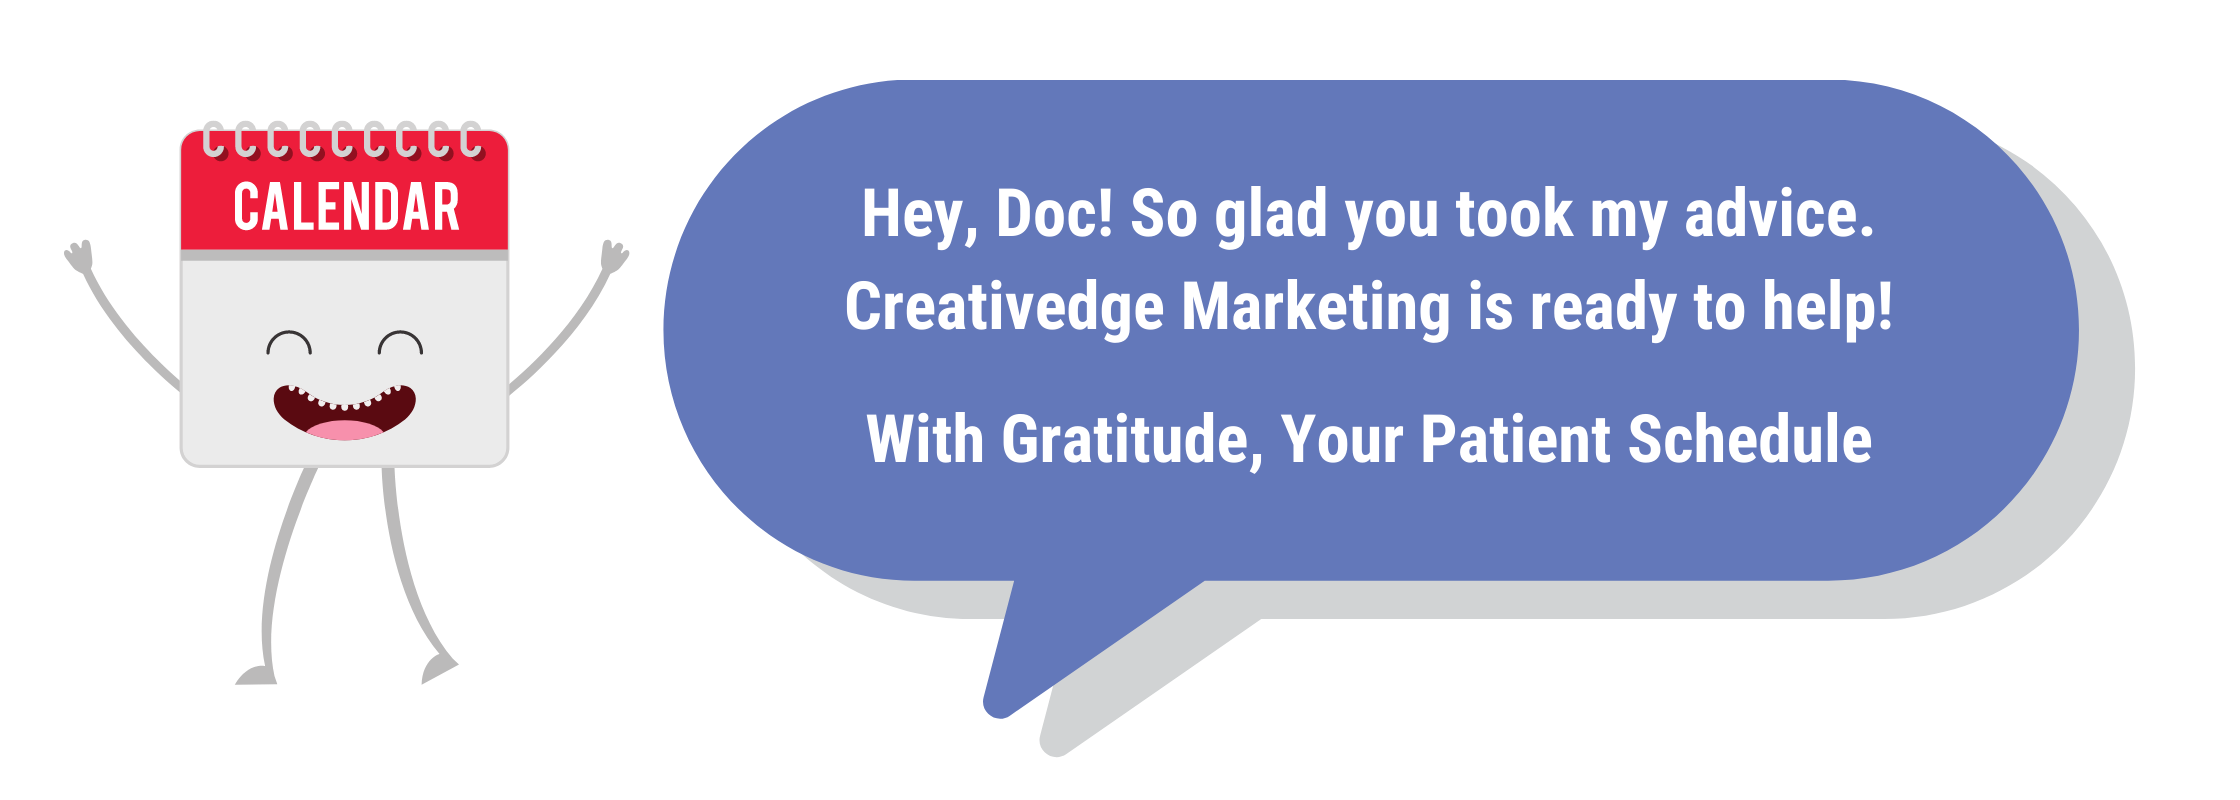 Hey Doc So glad you took my advice. Creativedge Marketing is ready to help With gratitude Your Patient Schedule